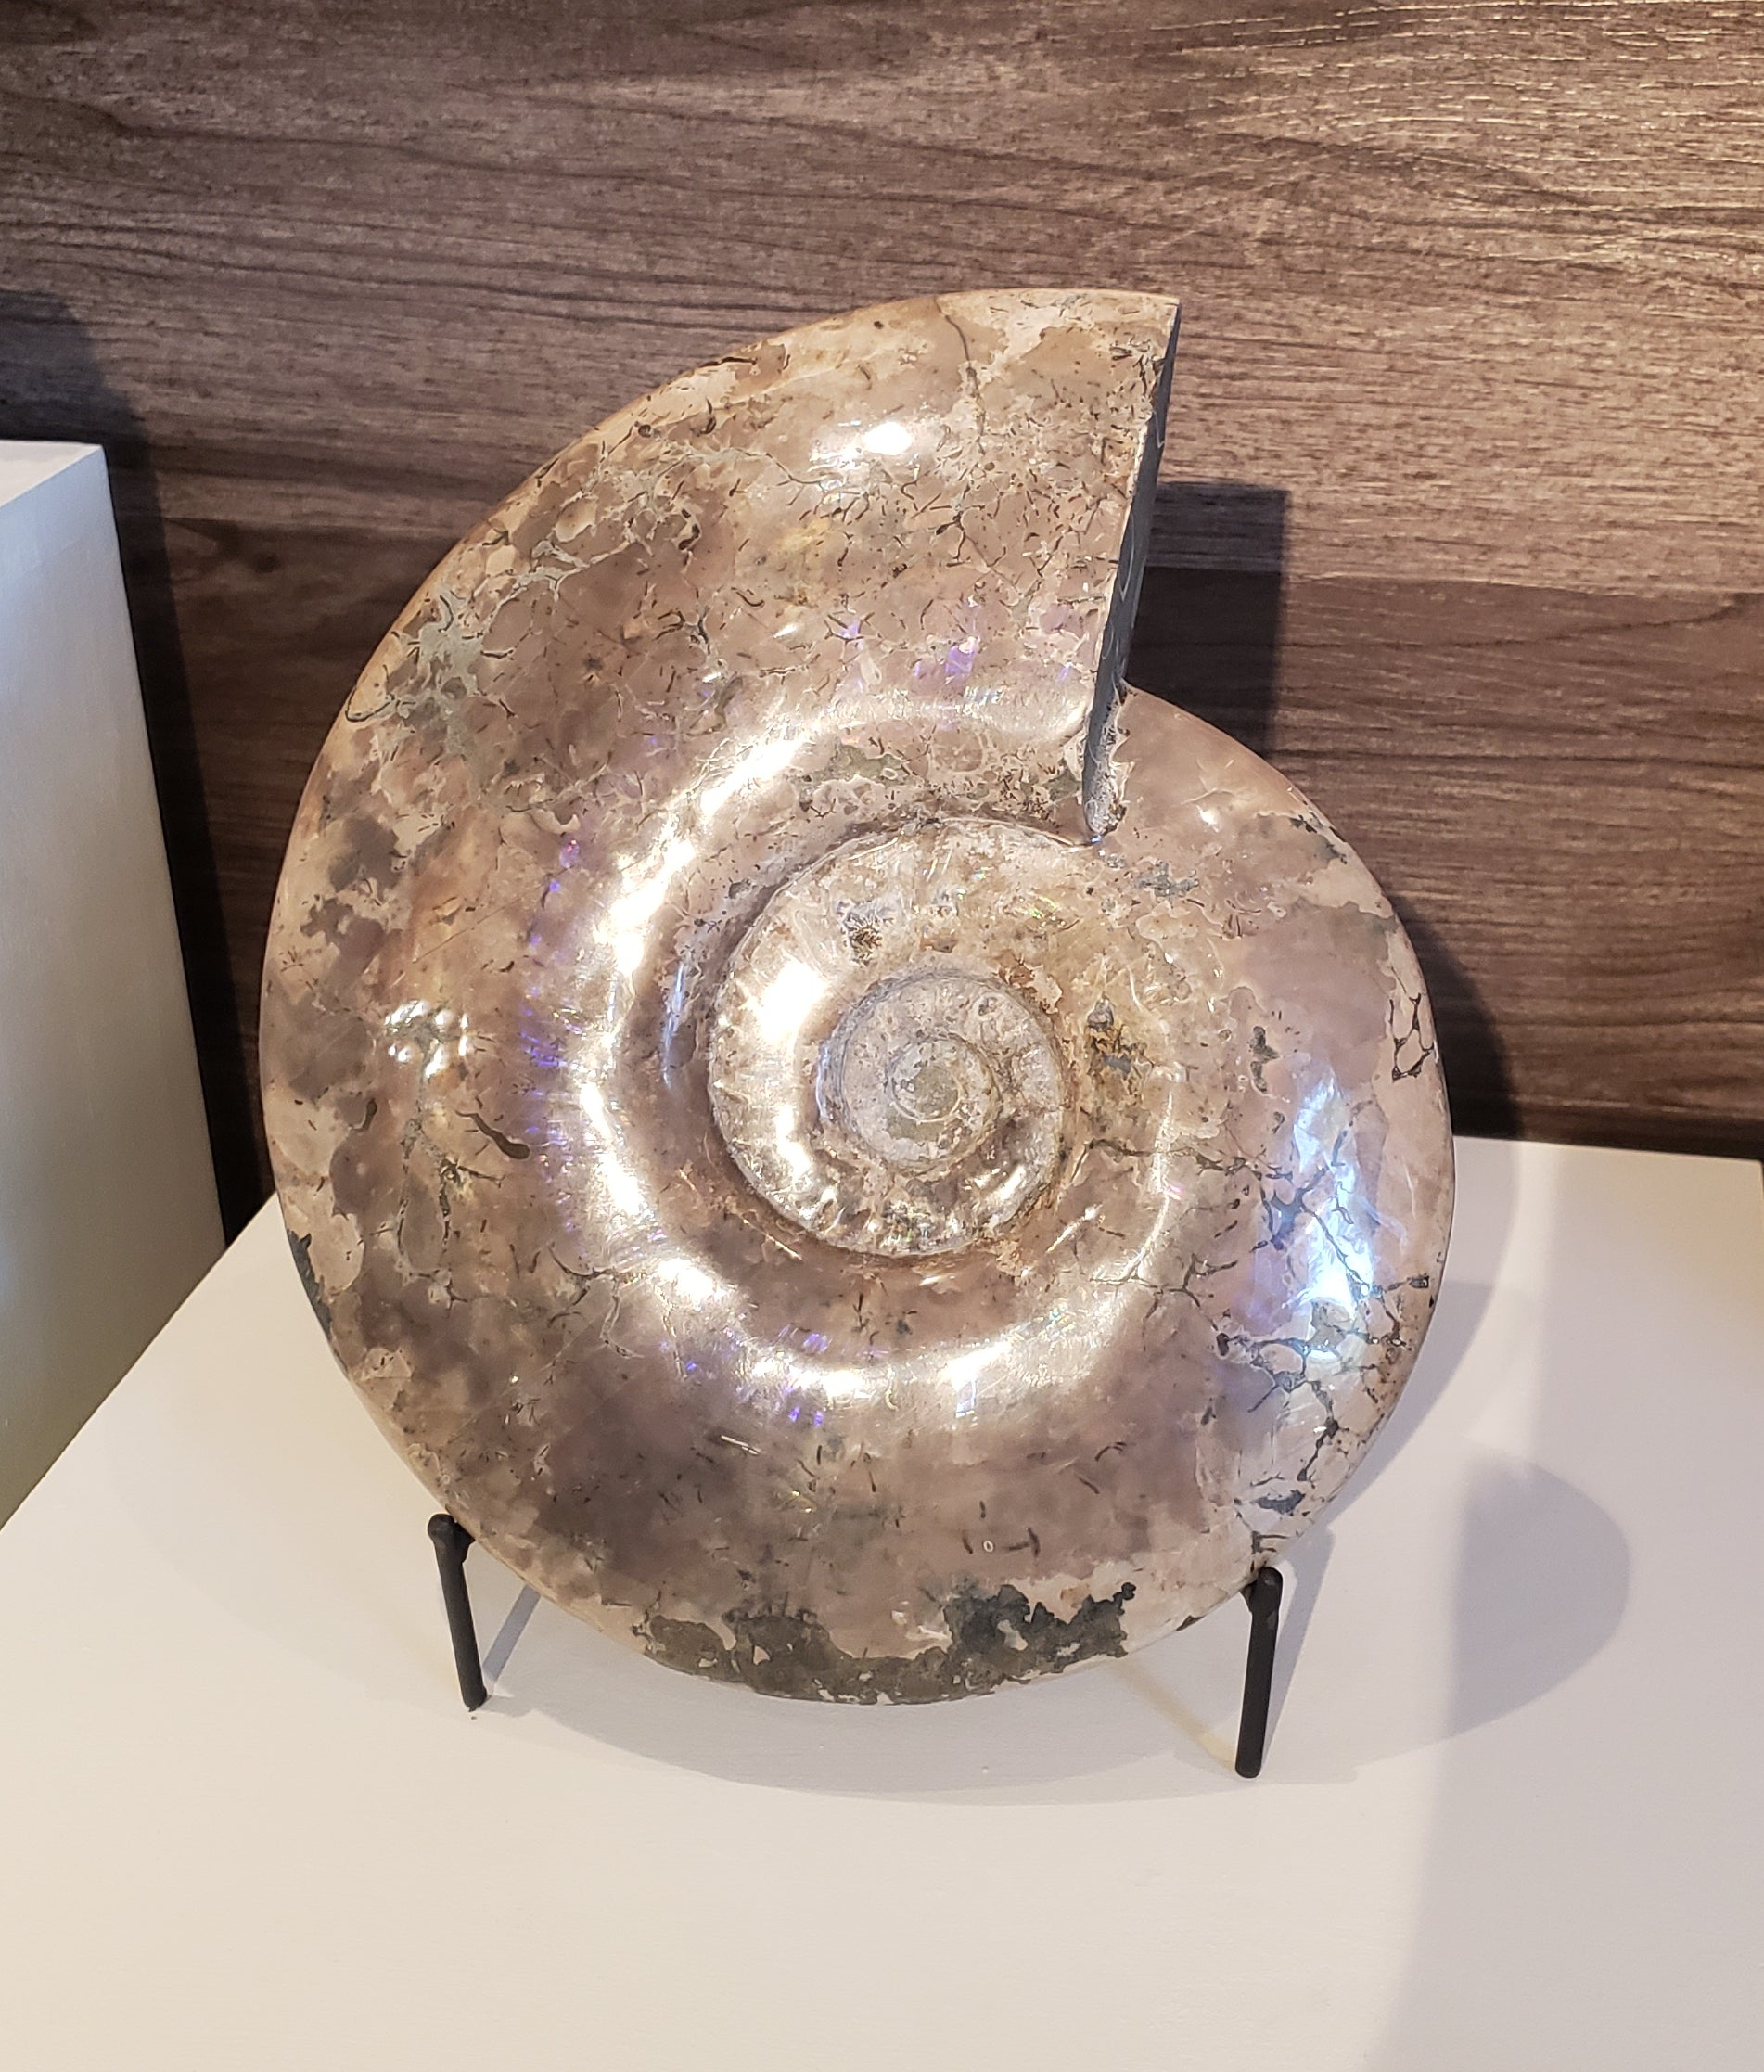 Large Opalized Ammonite Fossil from Madagascar